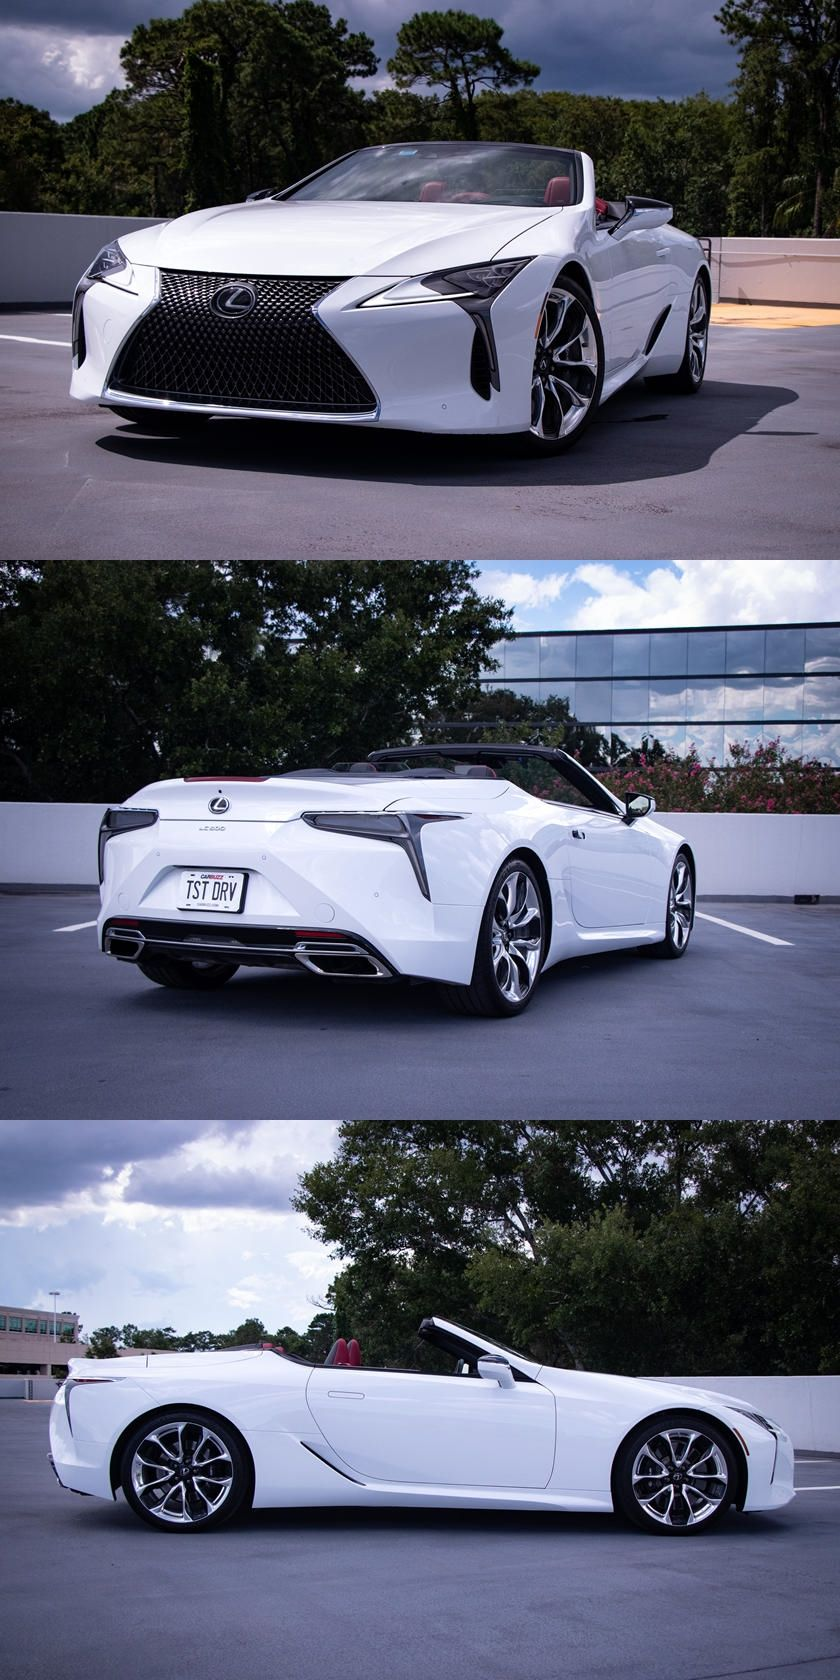 5 Best Features Of The 2021 Lexus Lc 500 Convertible With A Drop Top The Lc Is Even Better Lexus Lc Lexus Convertible Lexus